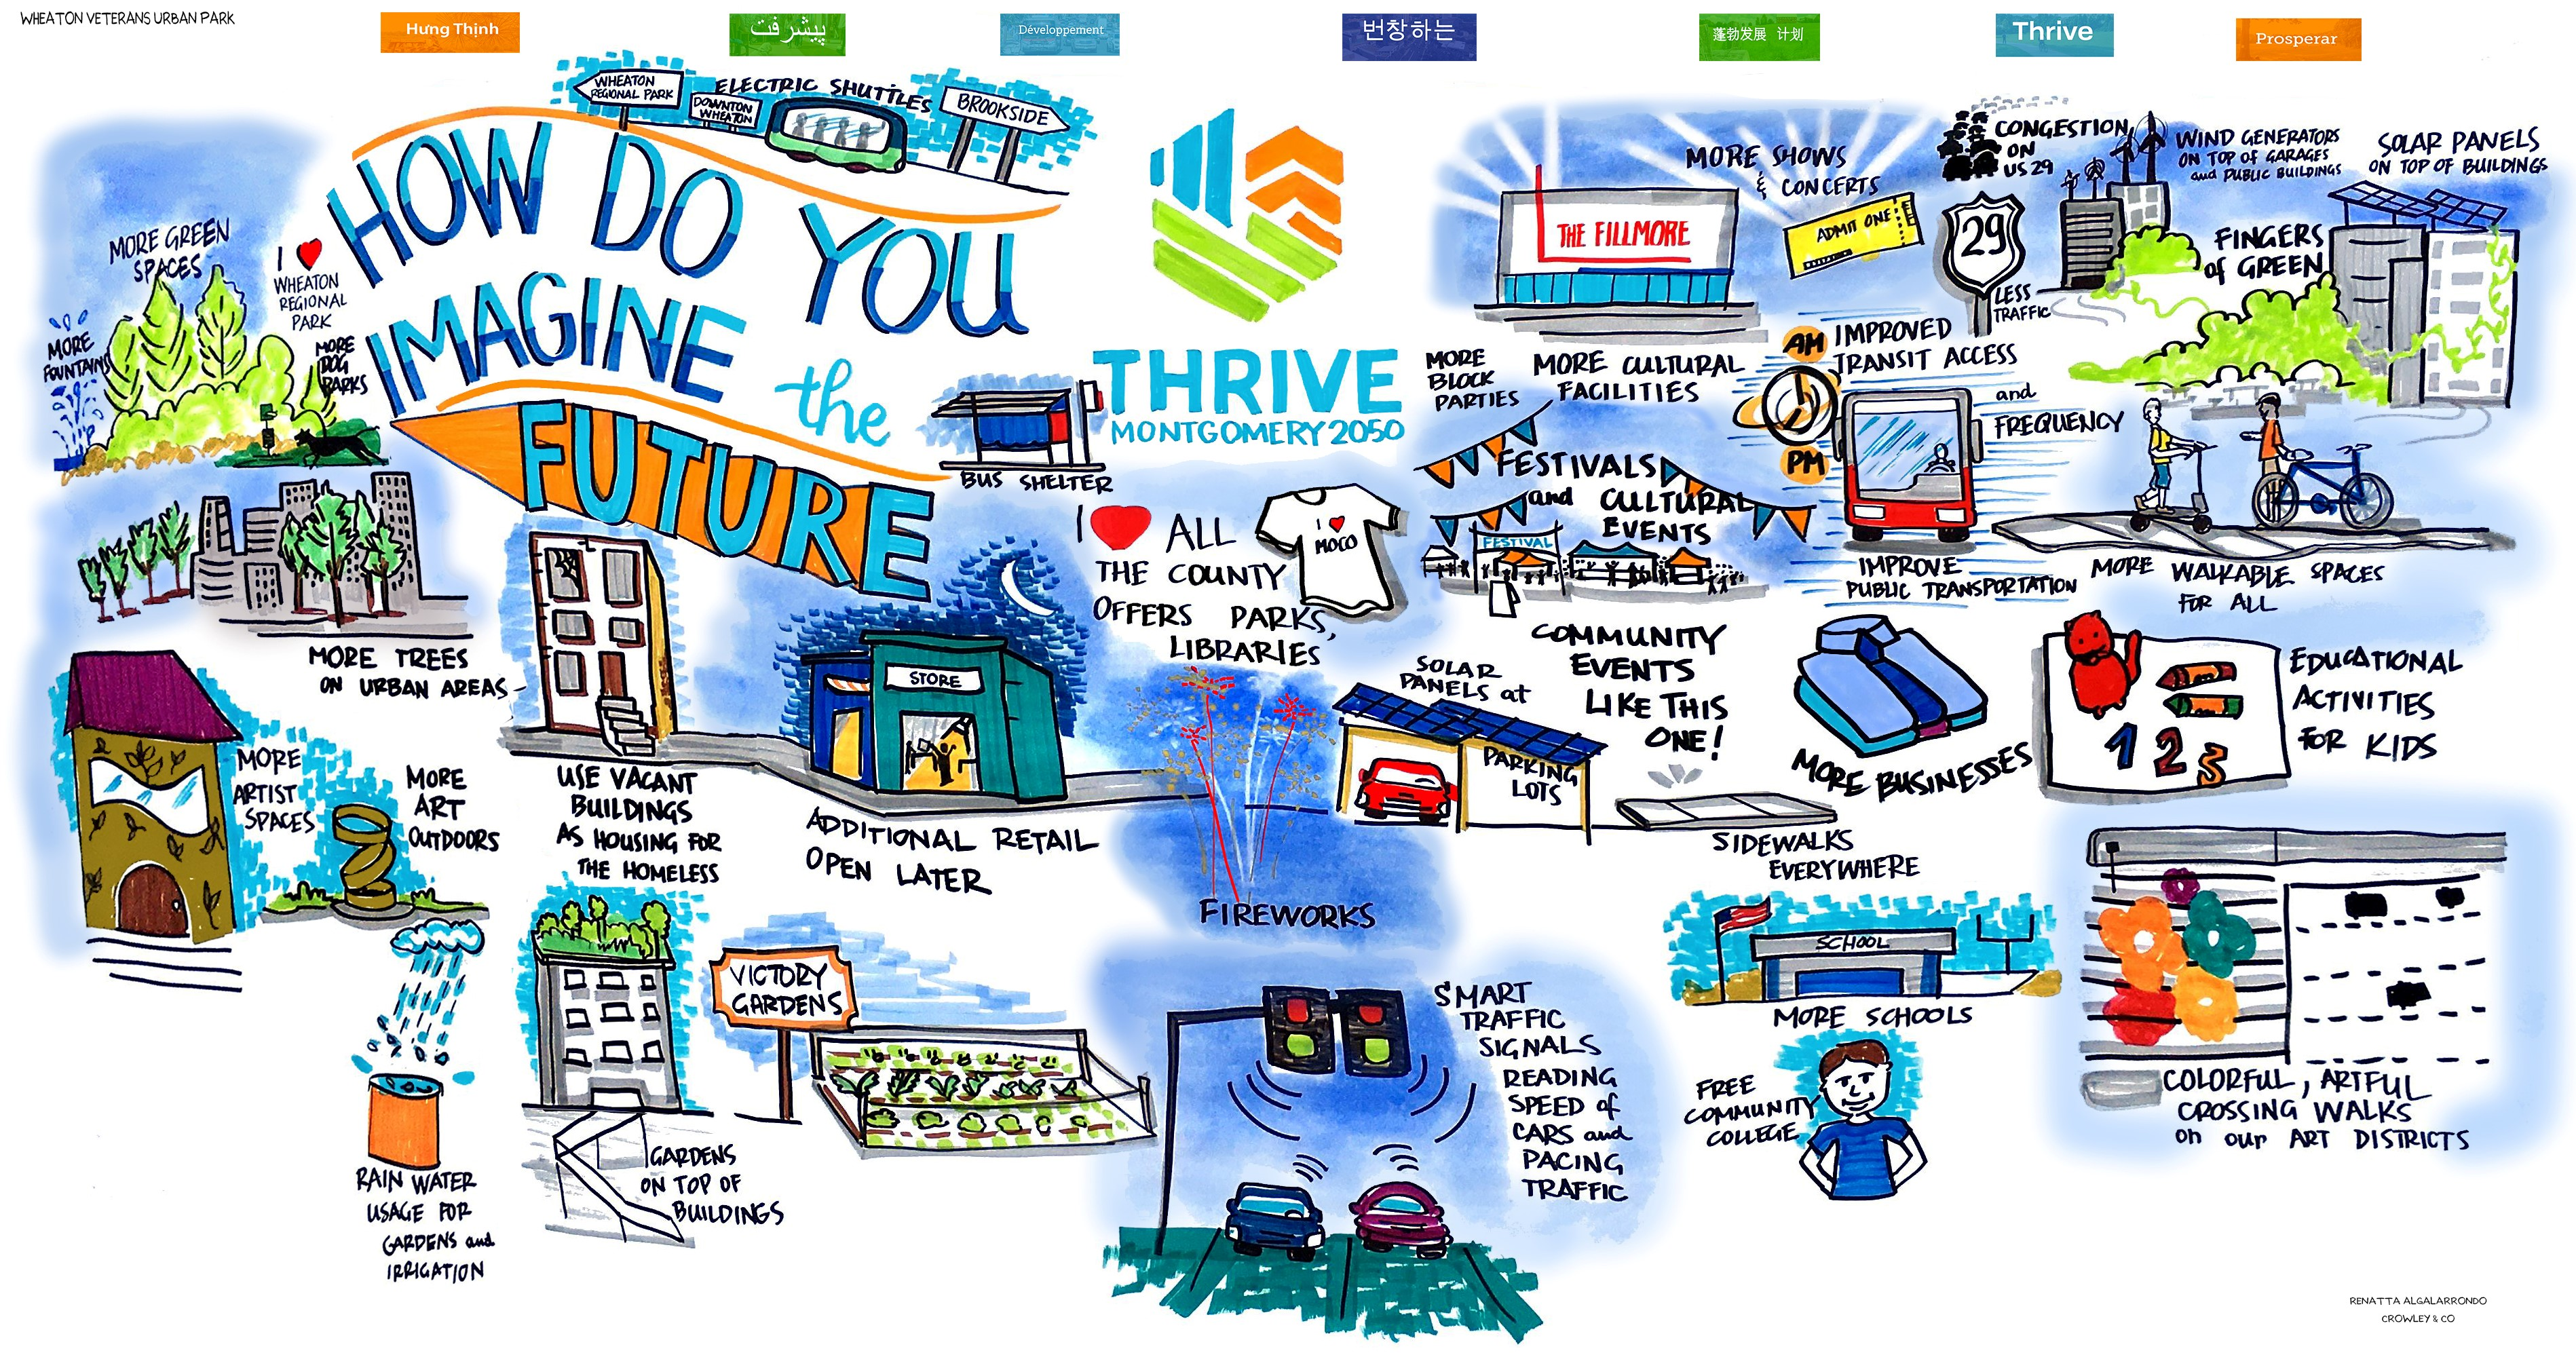 wheaton graphic recording